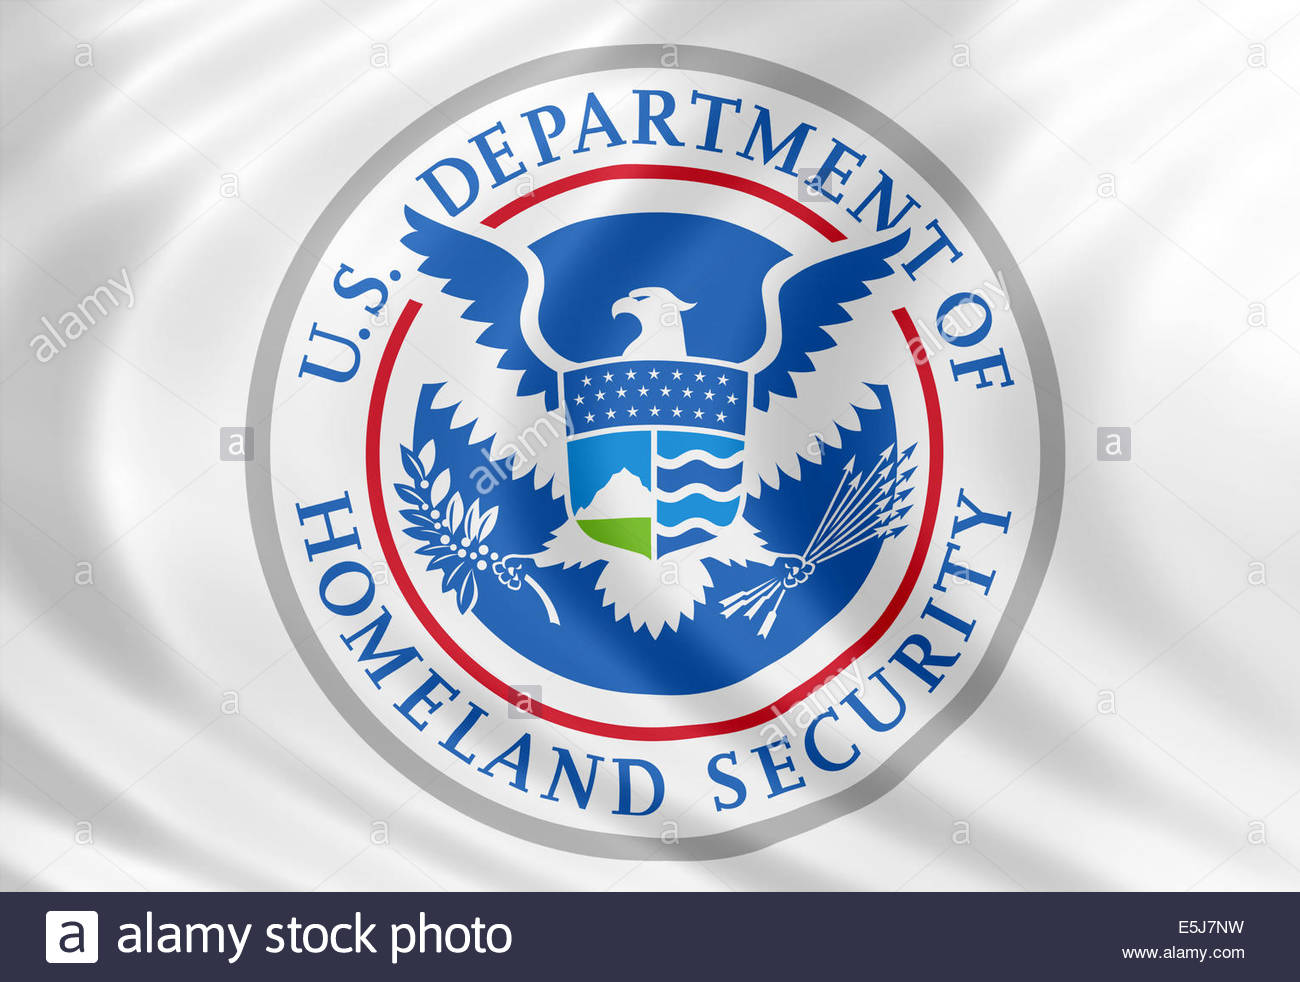 United States Department of Homeland Security logo icon with flag of silk - Stock Image